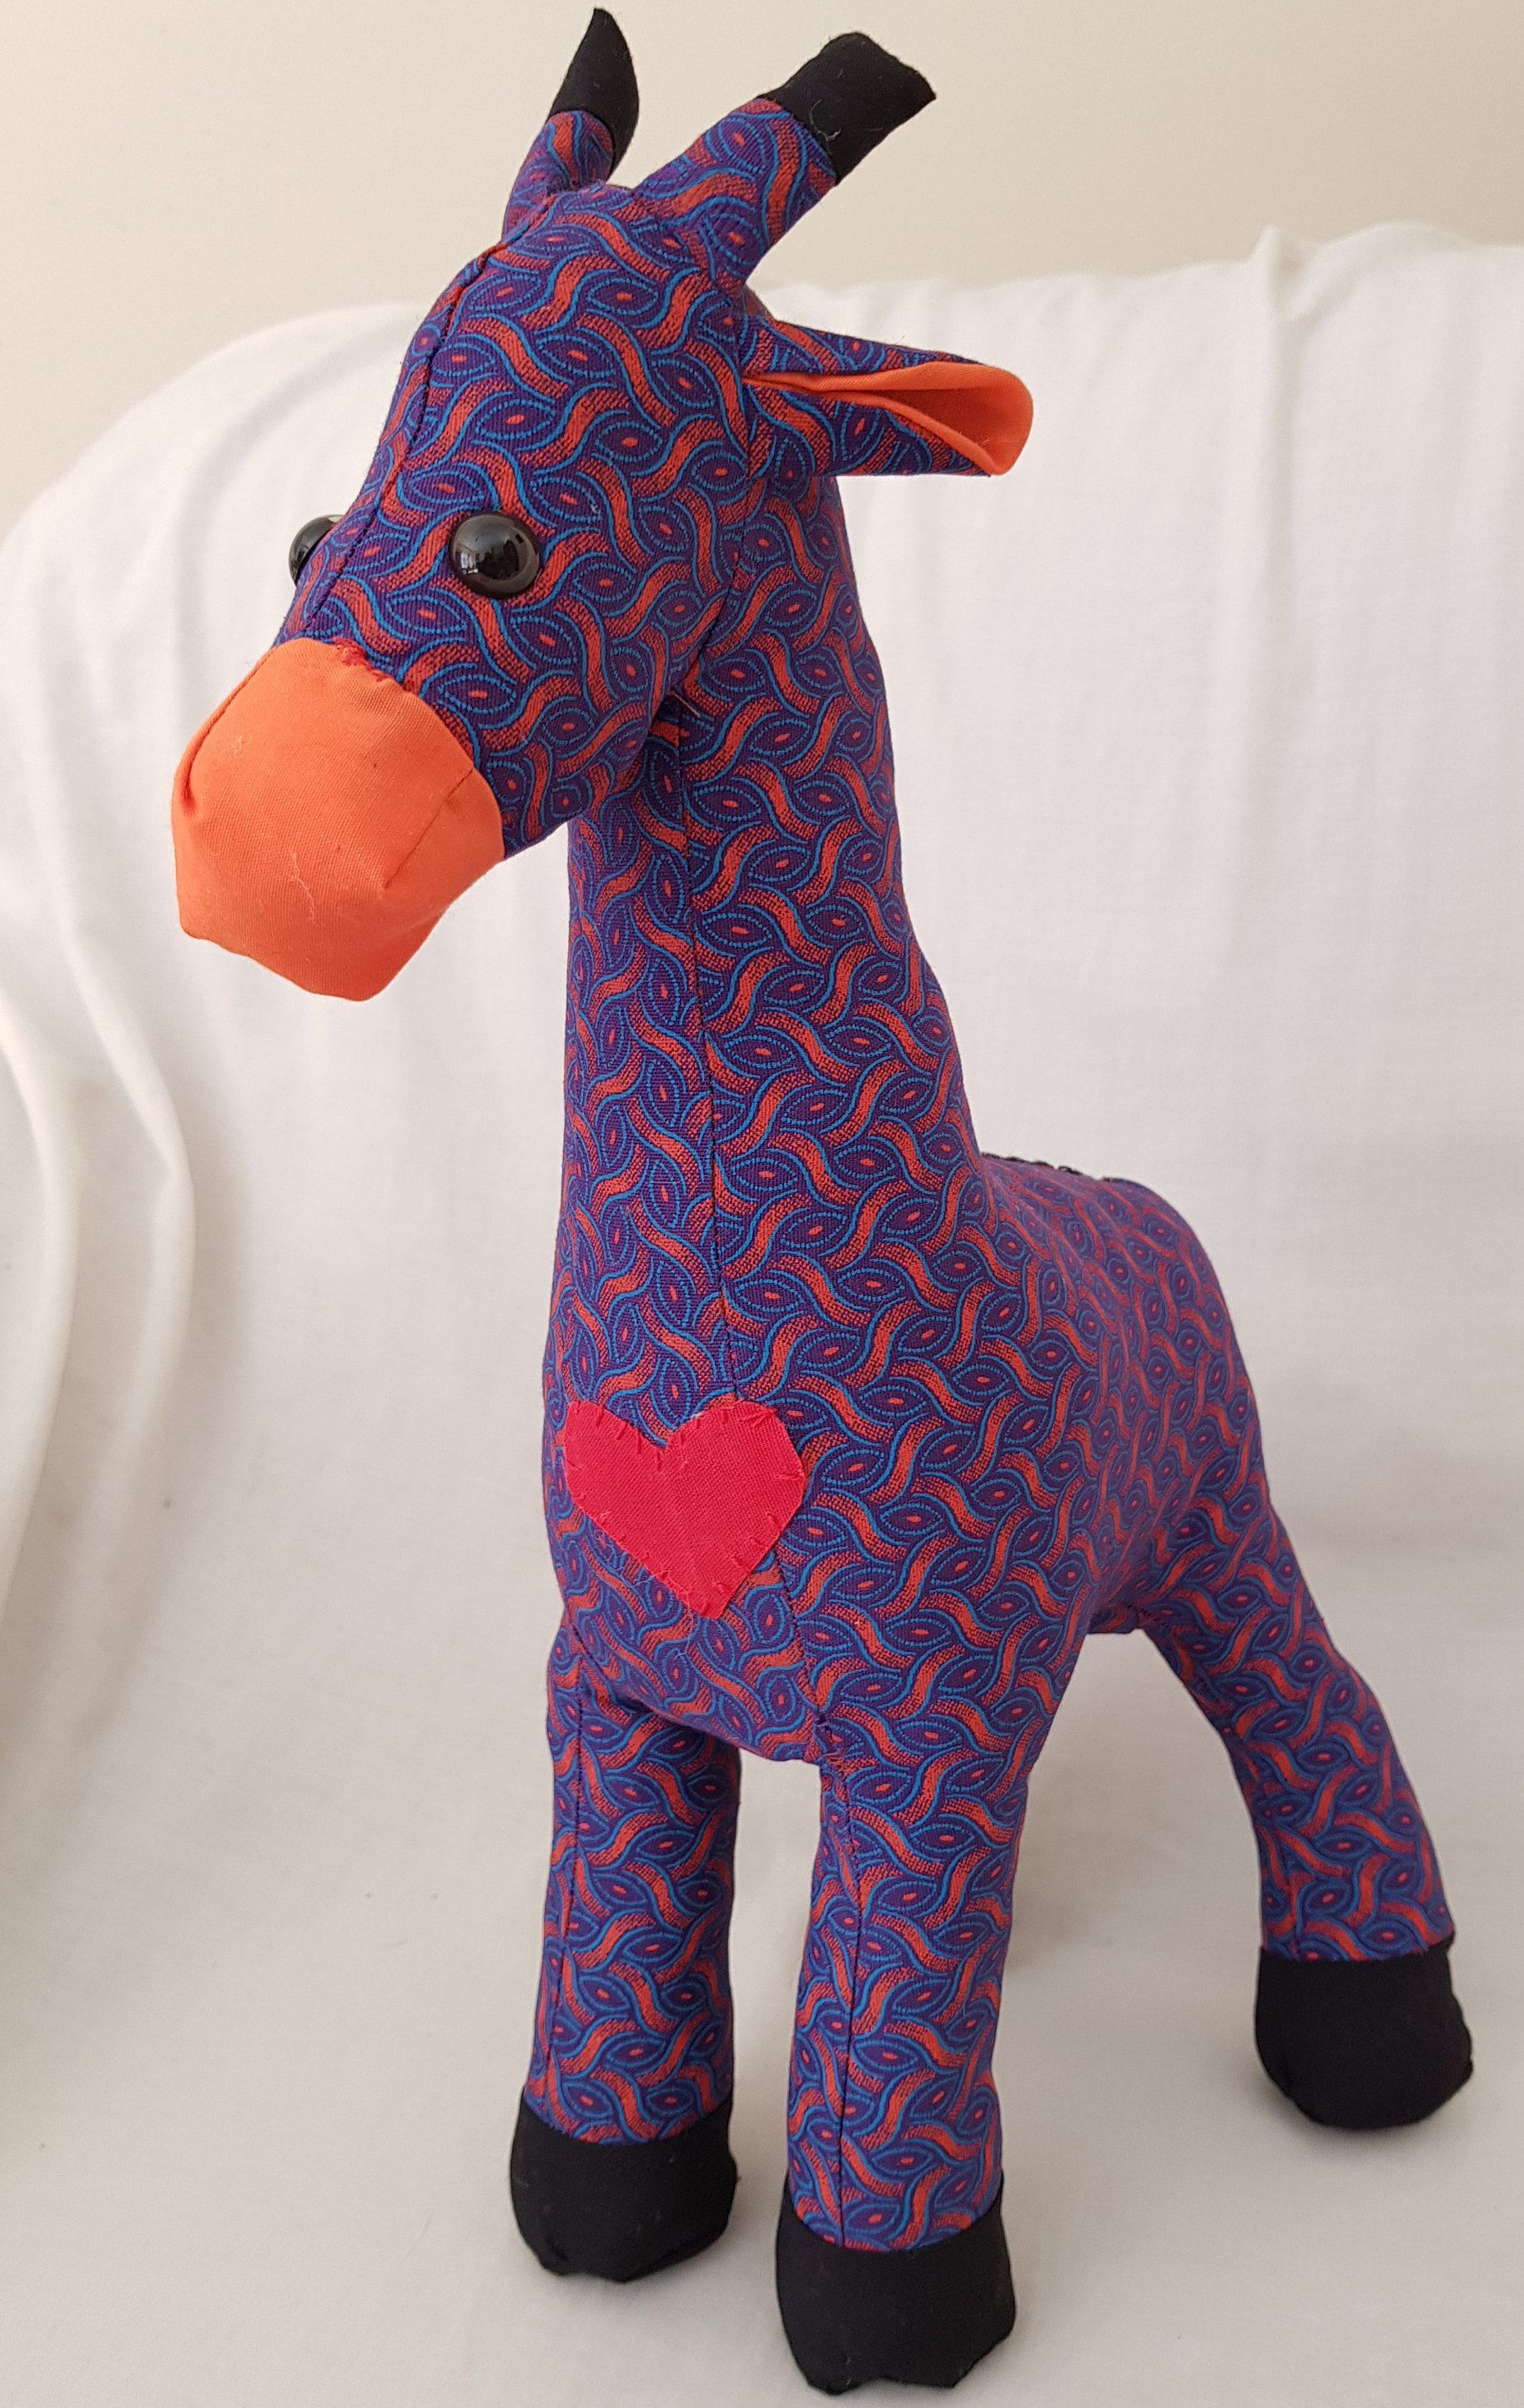 PINK GIRAFFE Baby Girl Children Stitched Toy Novelty Dress It Up Craft Buttons